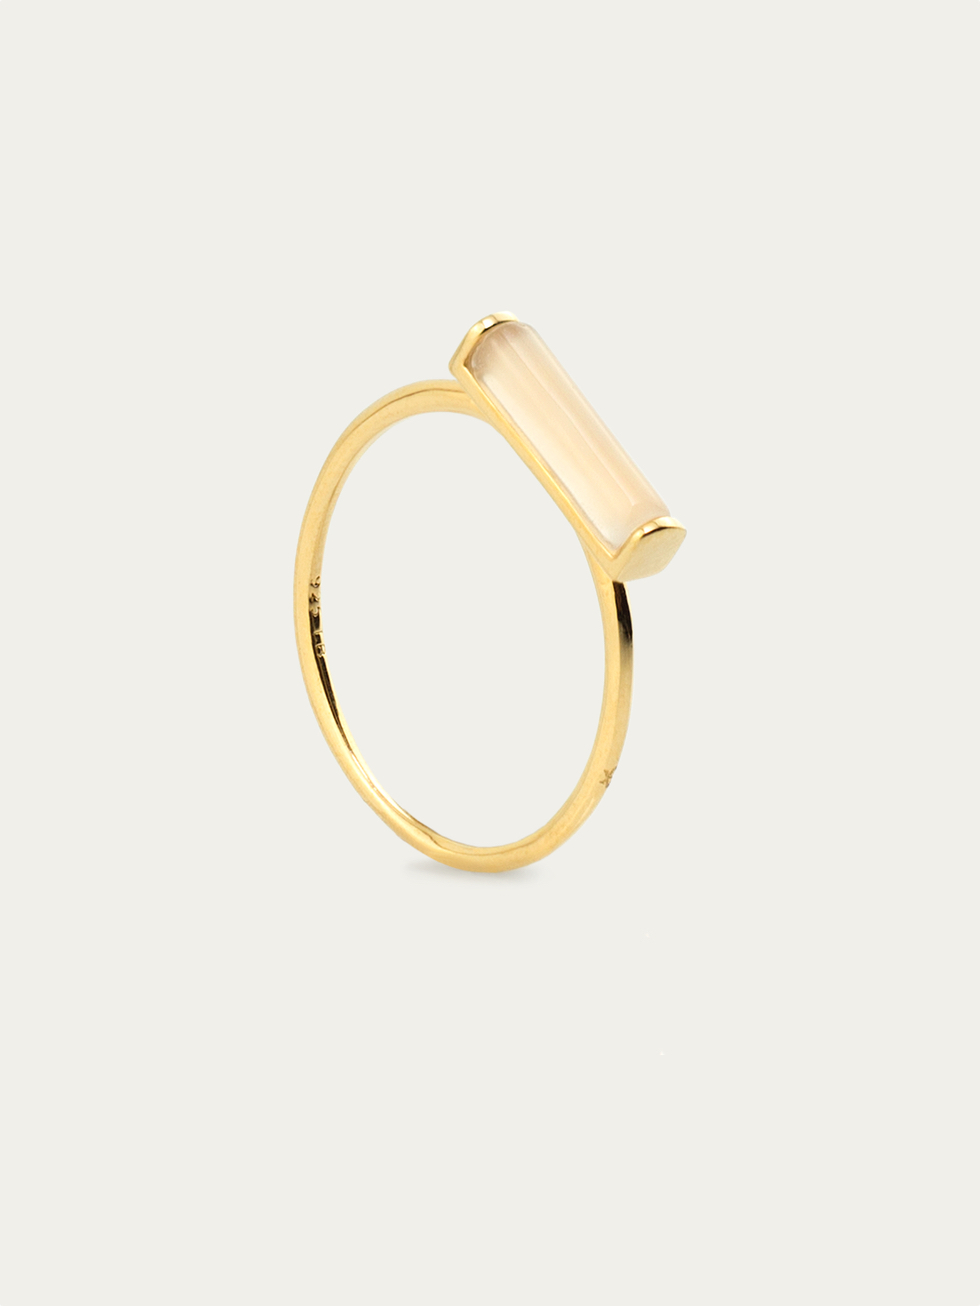 TUB gold ring